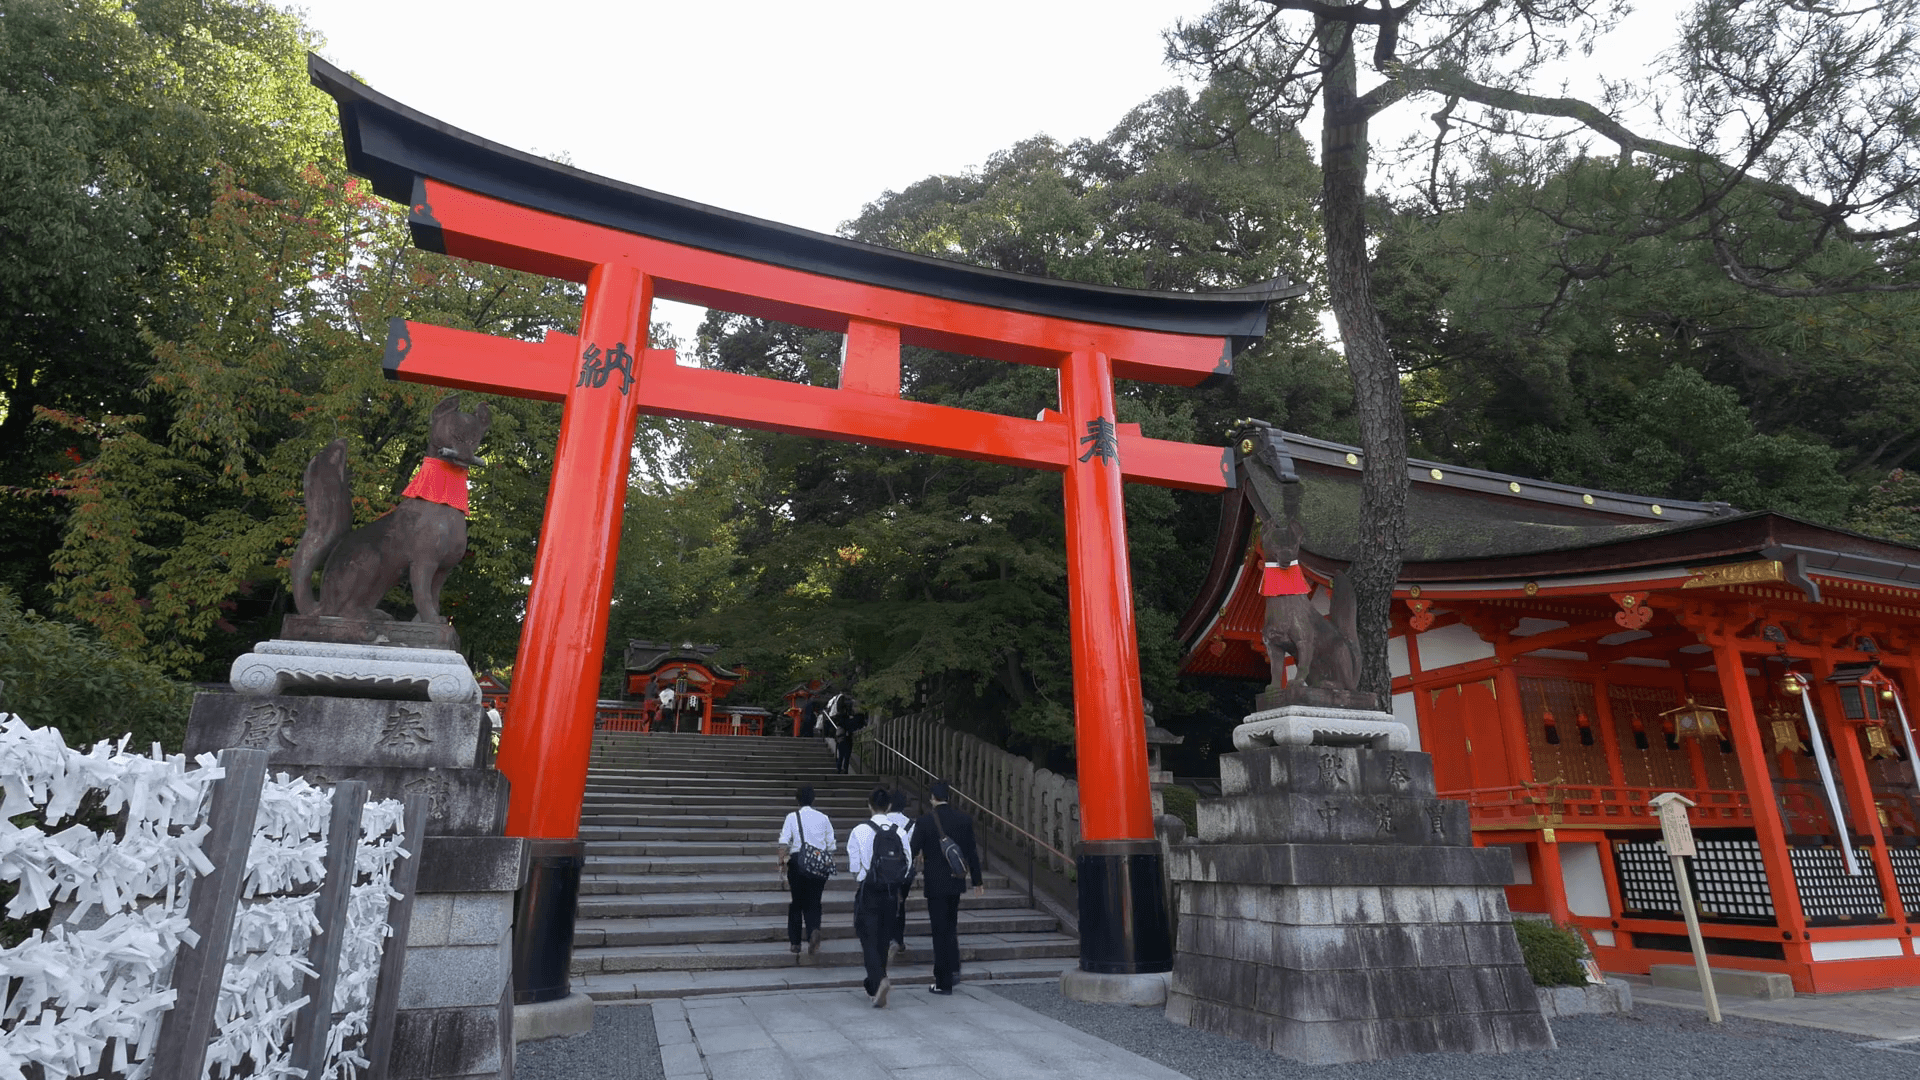 High school students pass a torii gate at Fushimi Inari Taisha, a